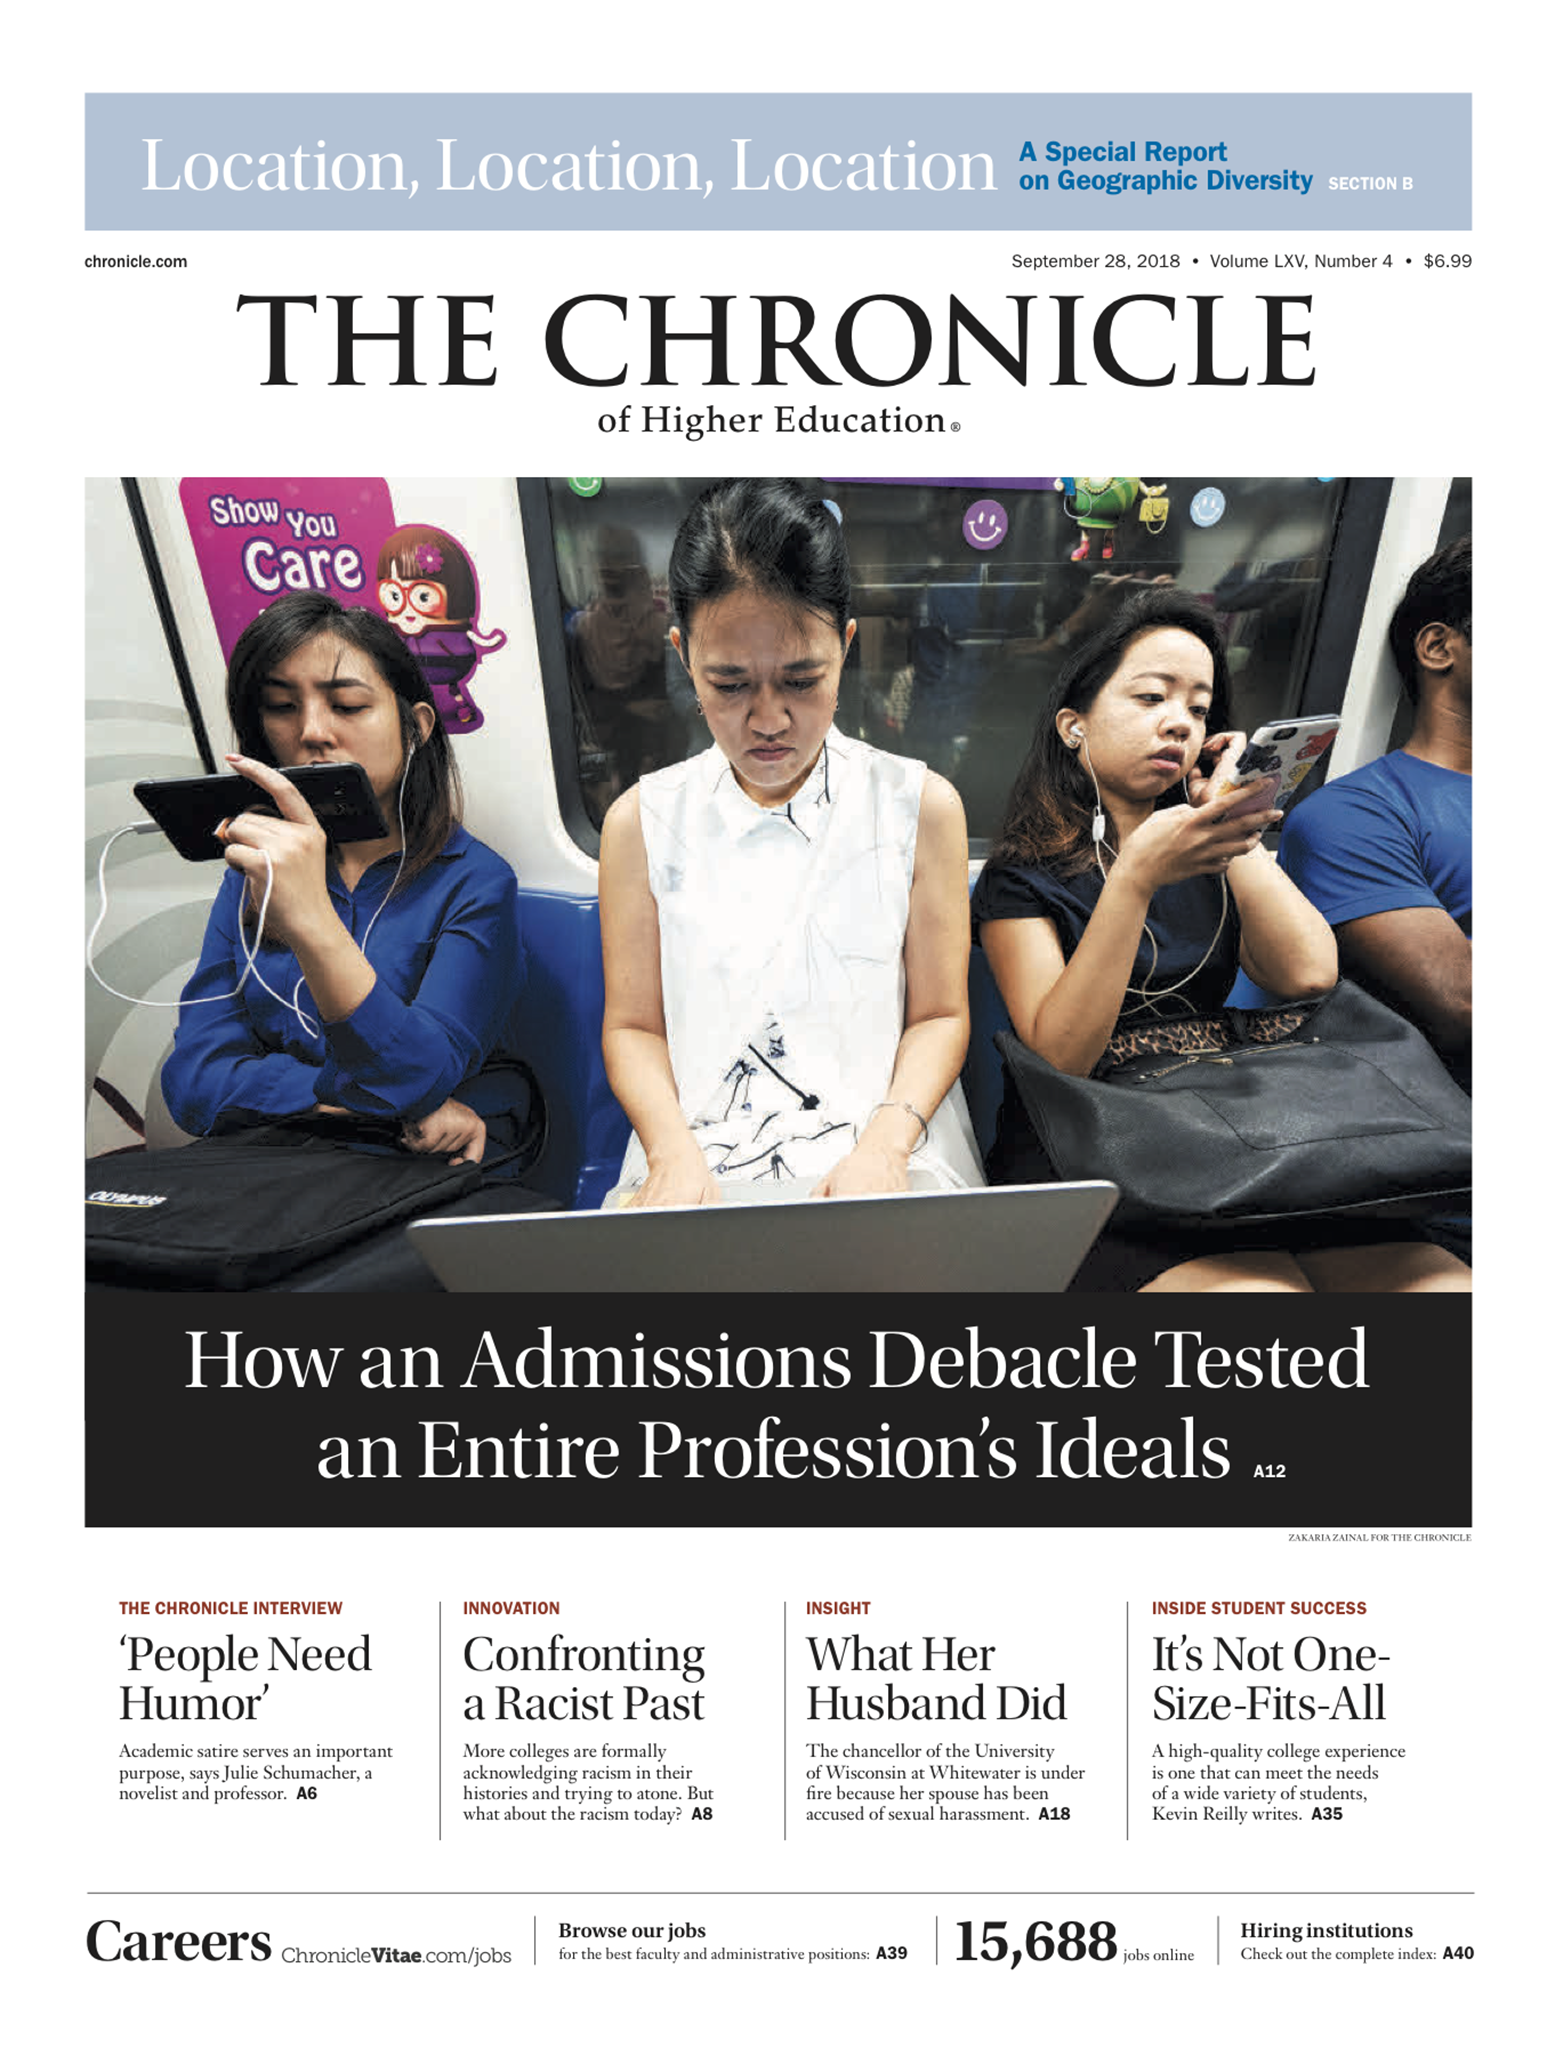 Cover photograph of The Chronicle of Higher Education.